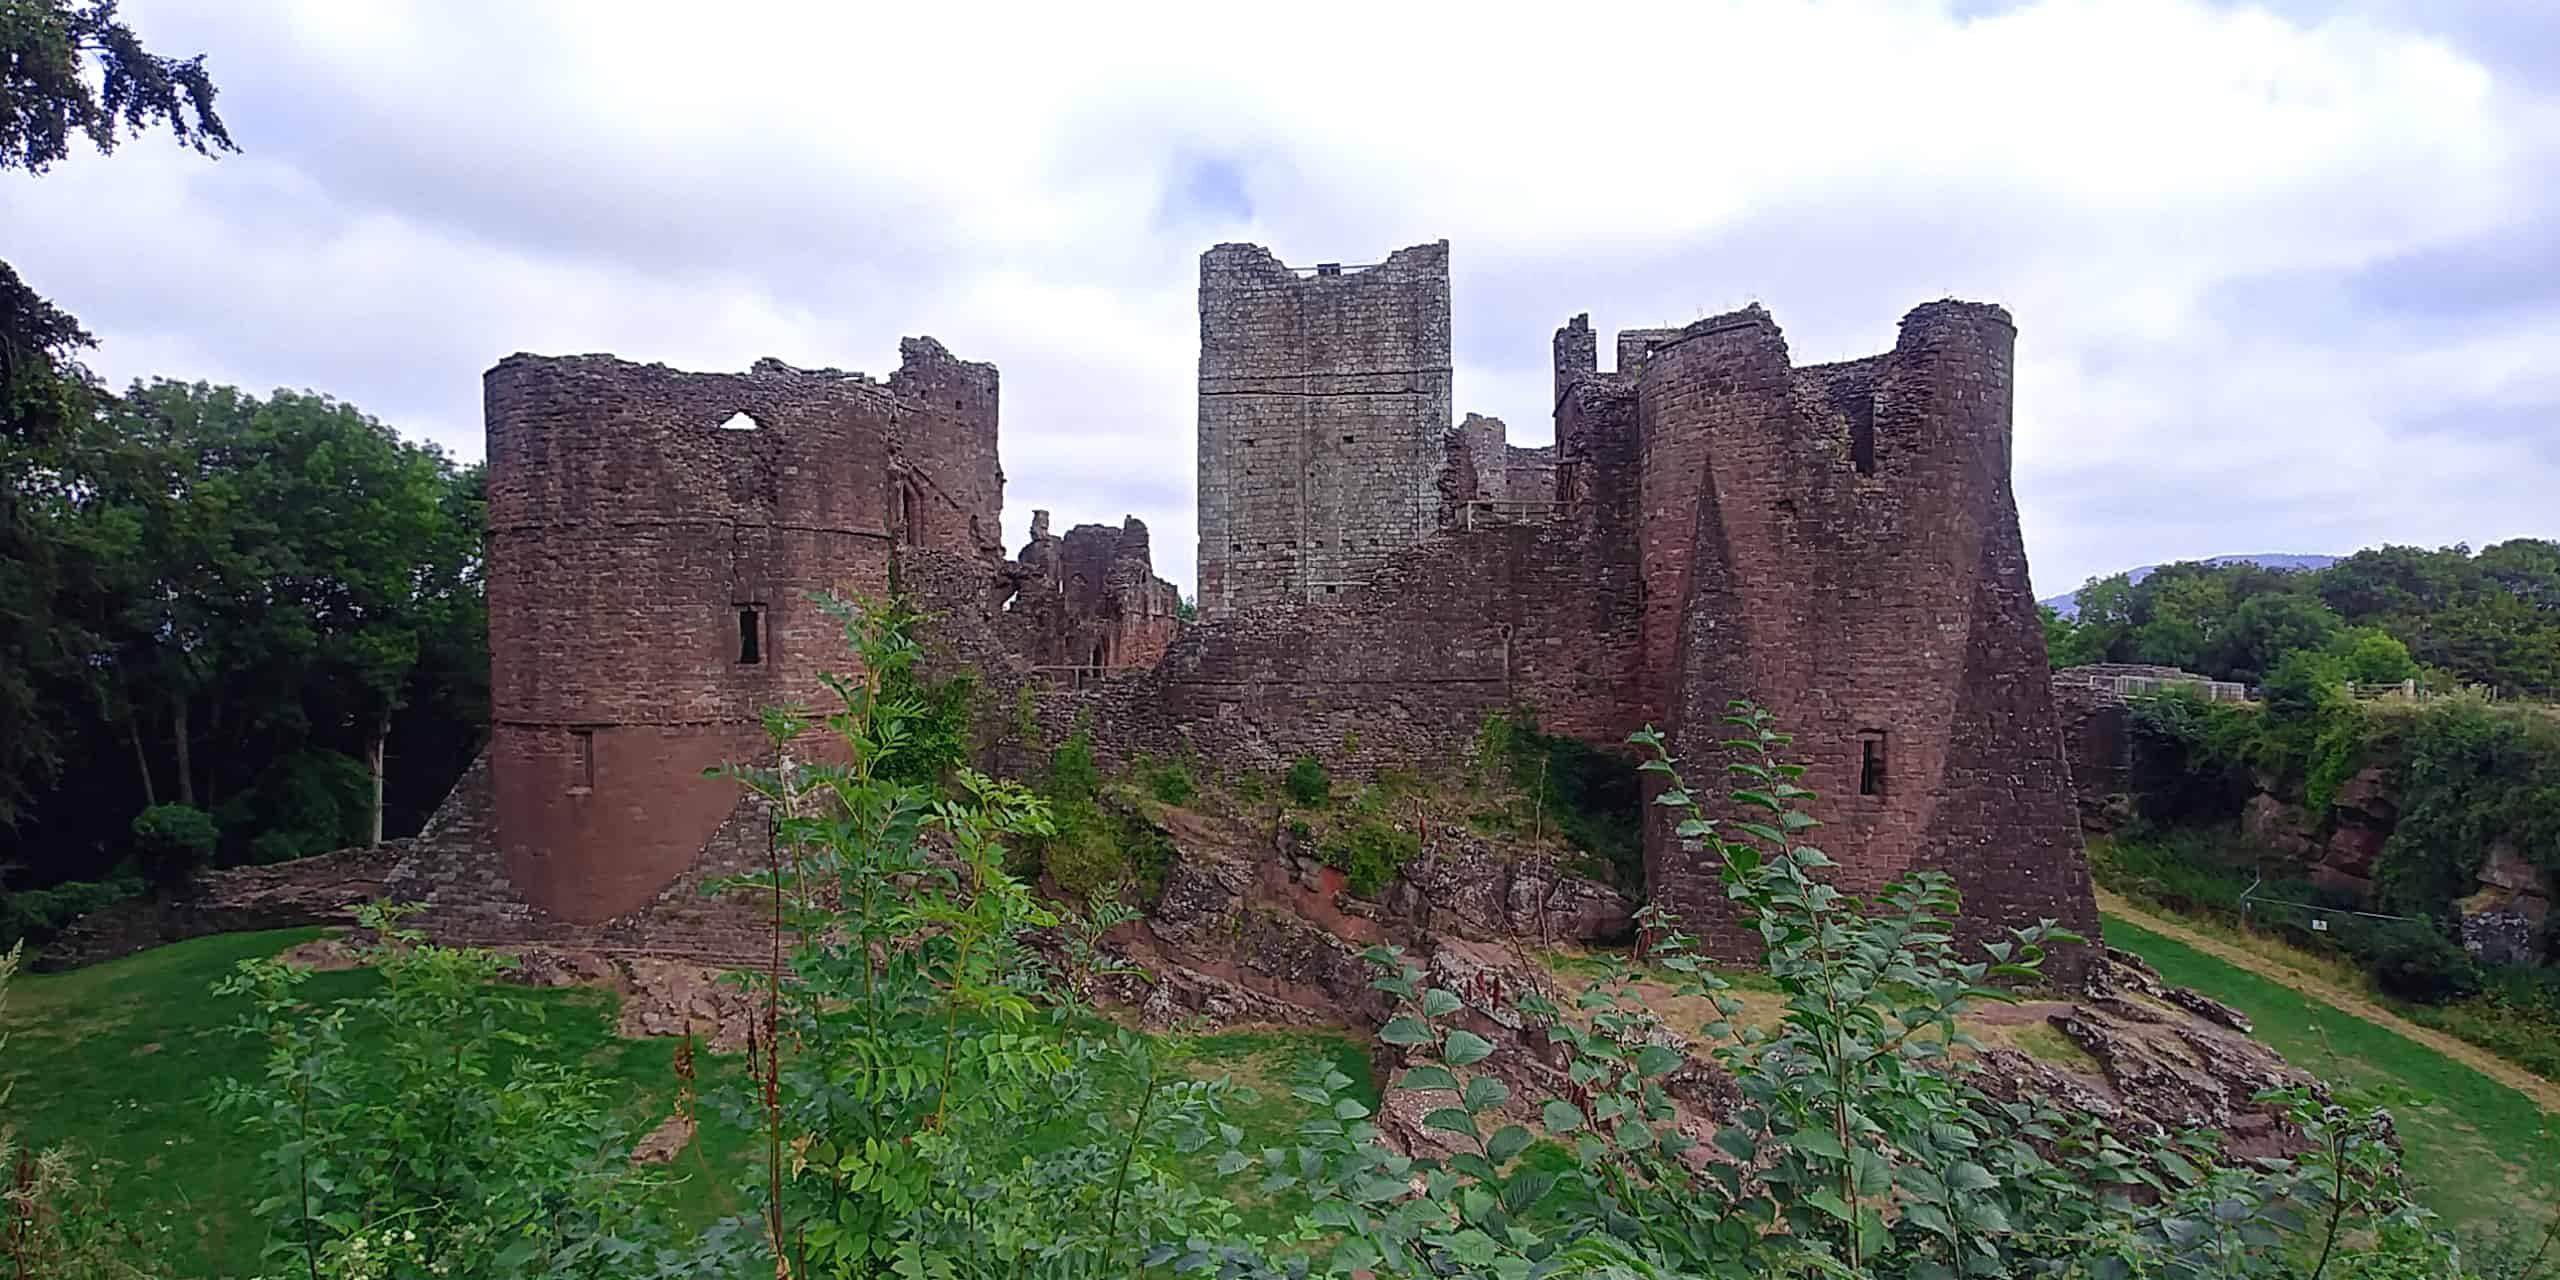 Goodrich Castle, Ross-on-Wye England